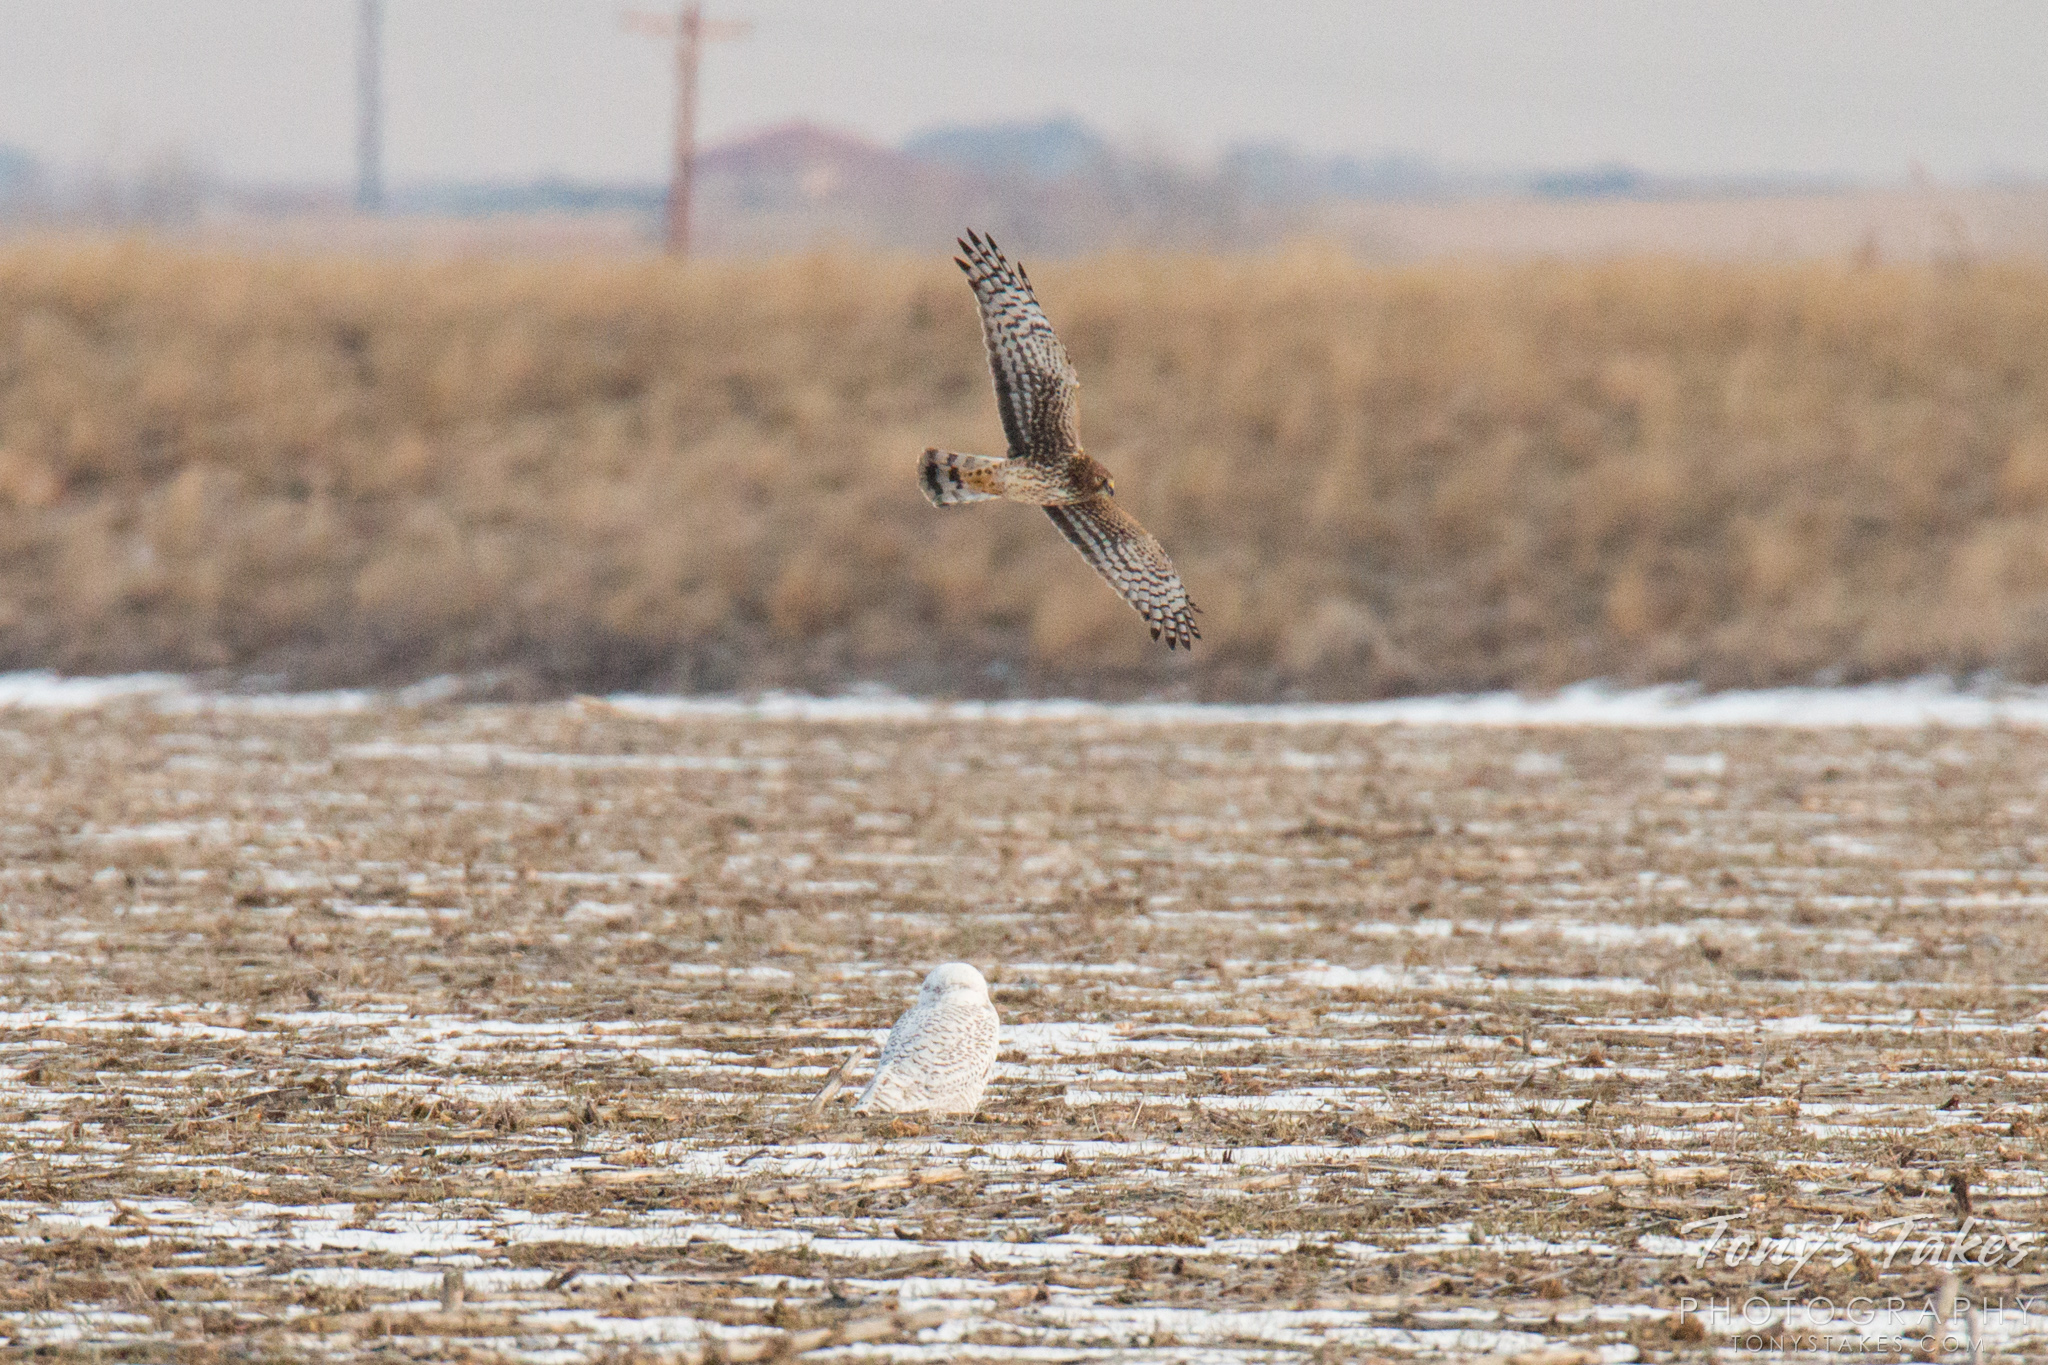 Northern Harrier hassles a Snowy Owl